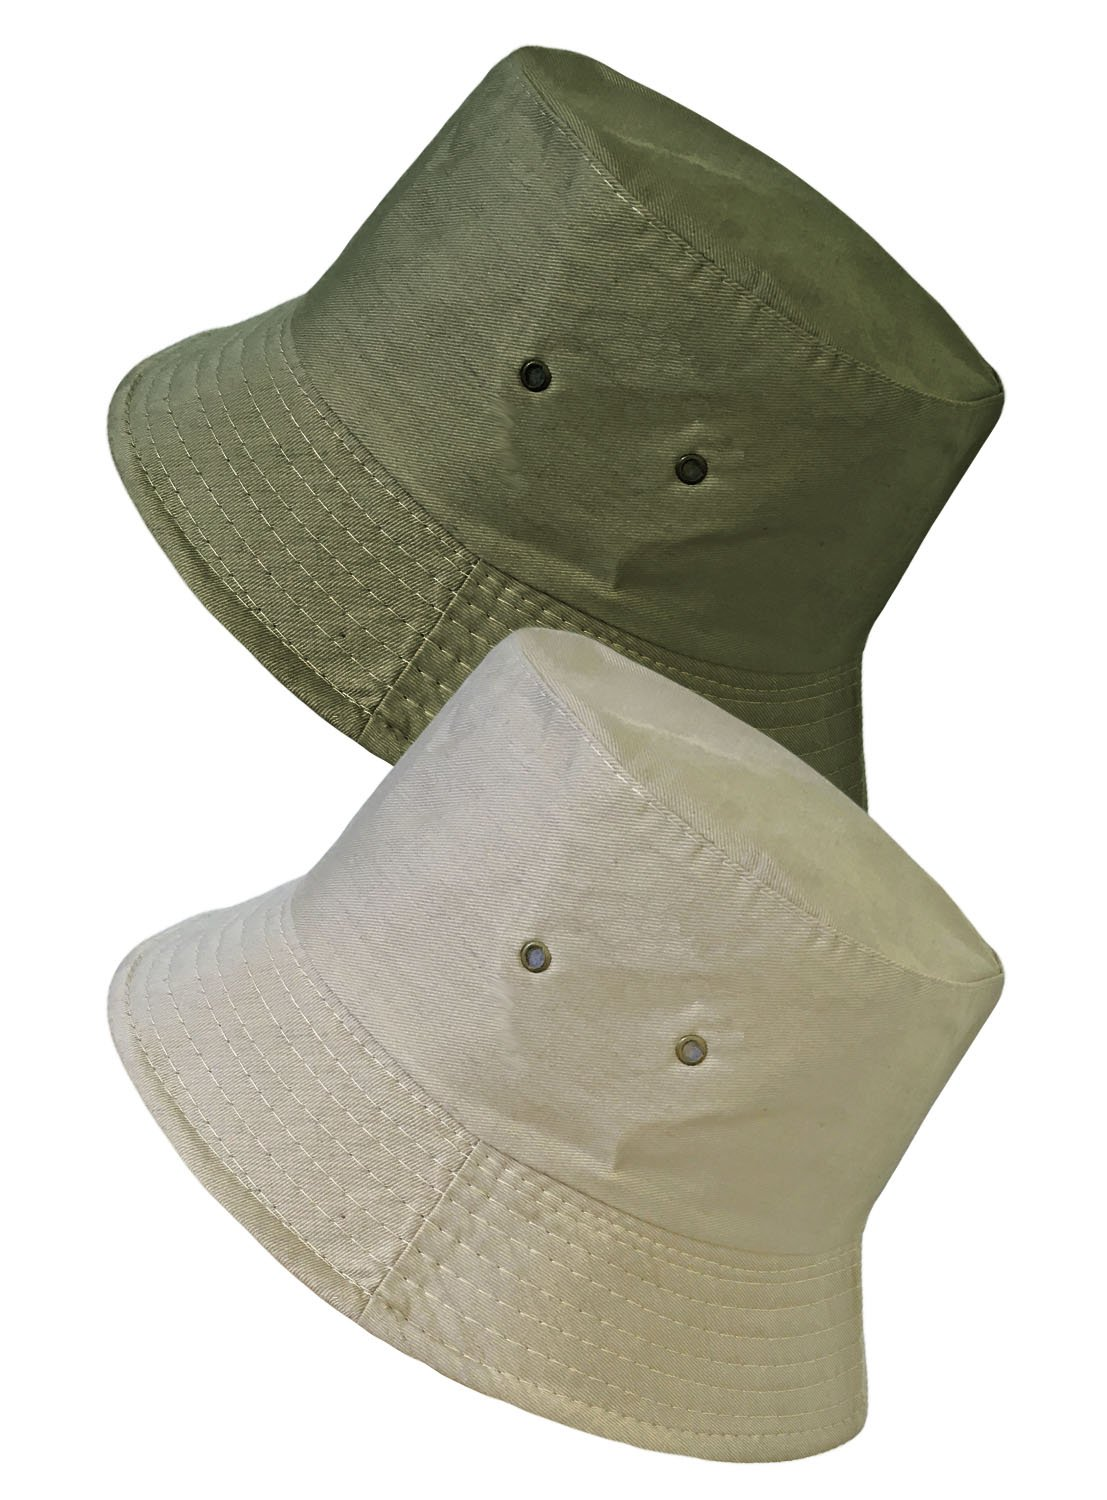 TOSKATOK UPF 50+ Unisex Mens Womens Reversible Cotton Blend Summer Bucket/Bush Hats